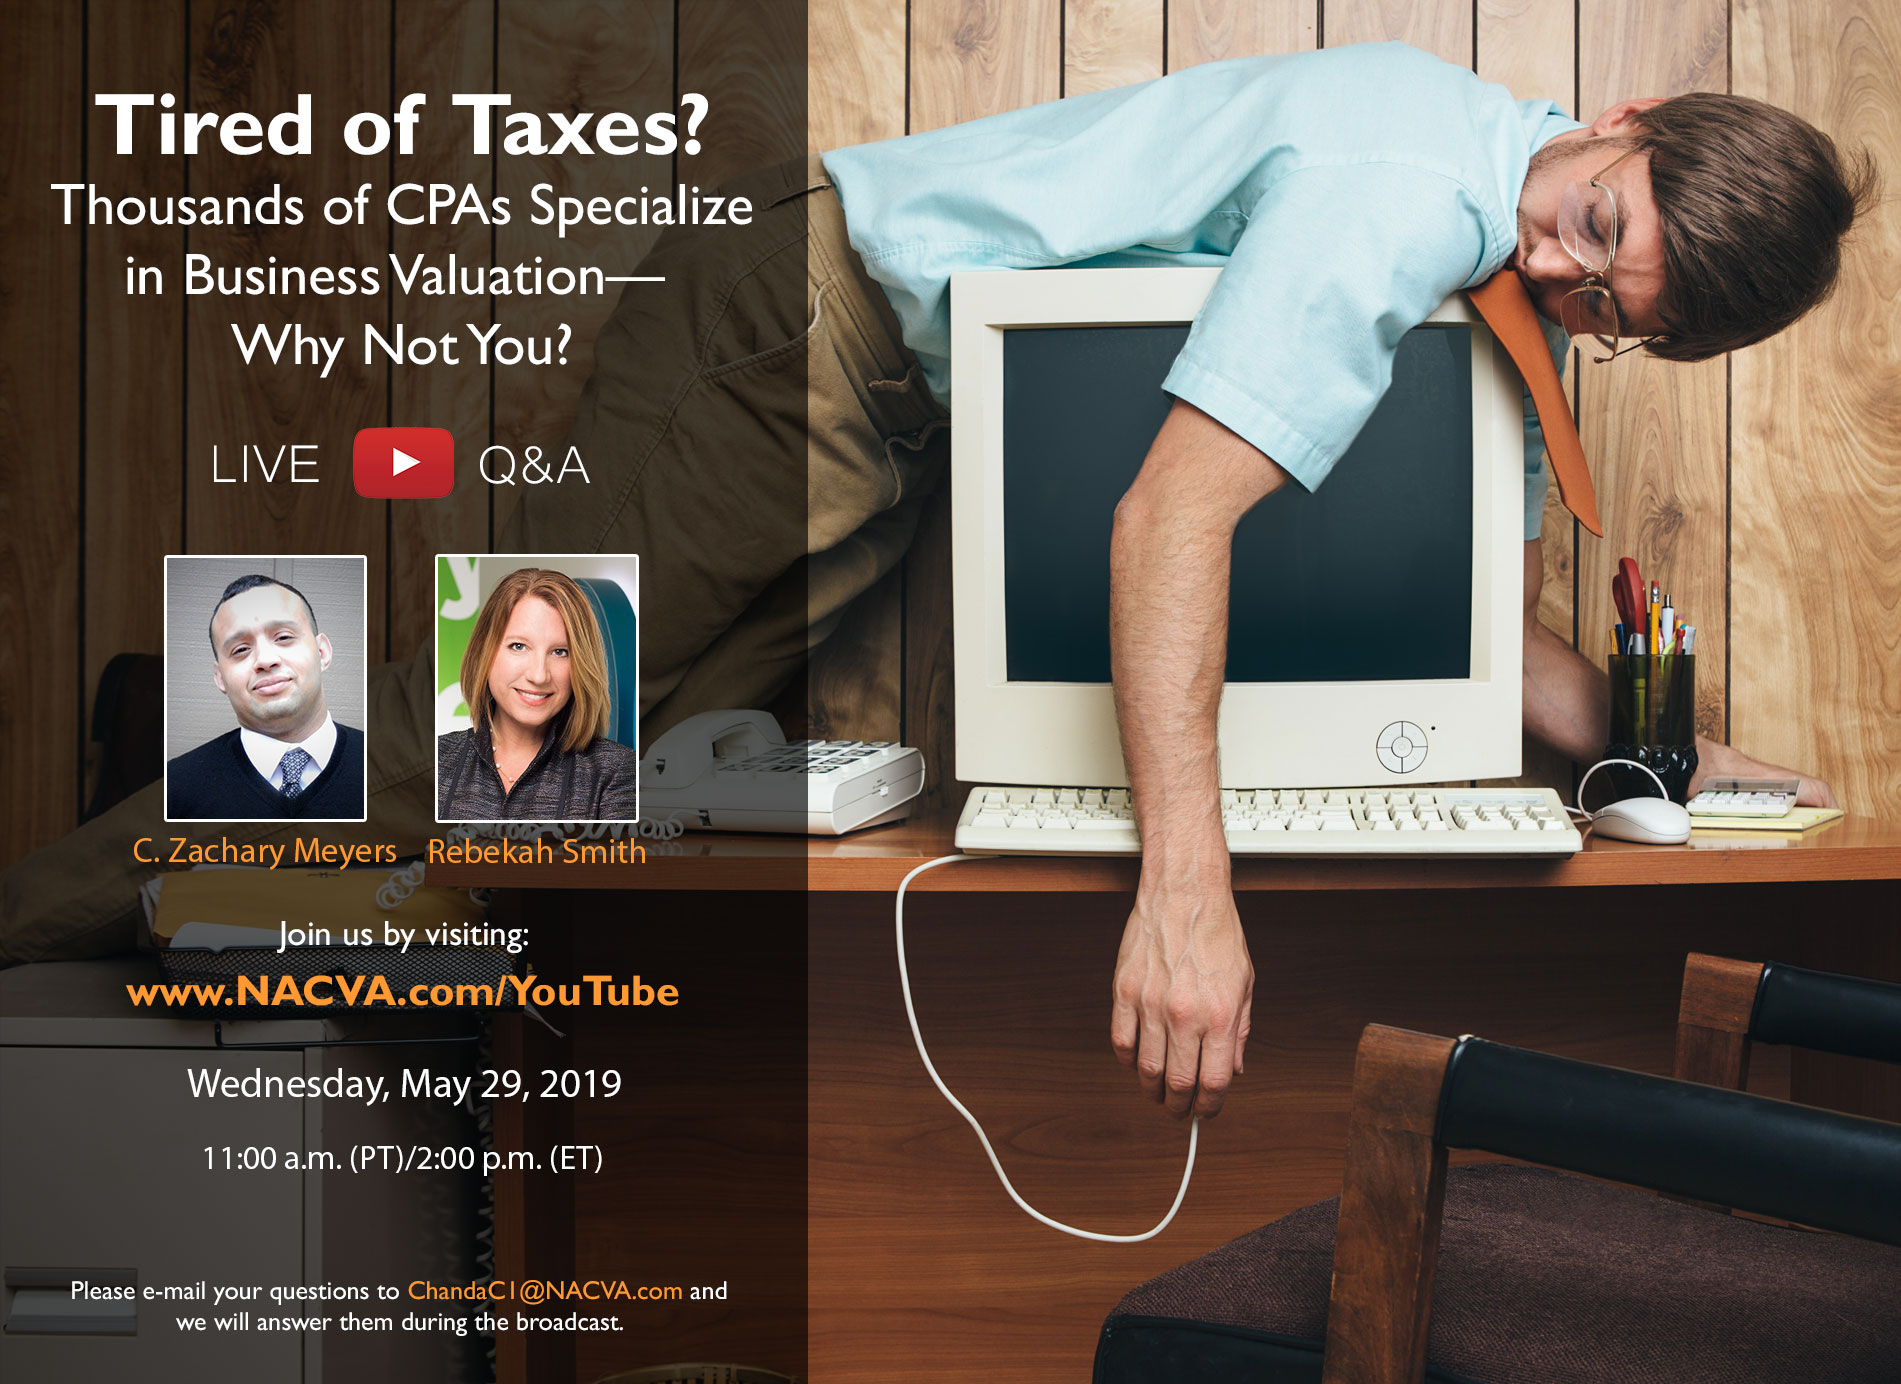 Tired of Taxes? Live Q&A Discussion